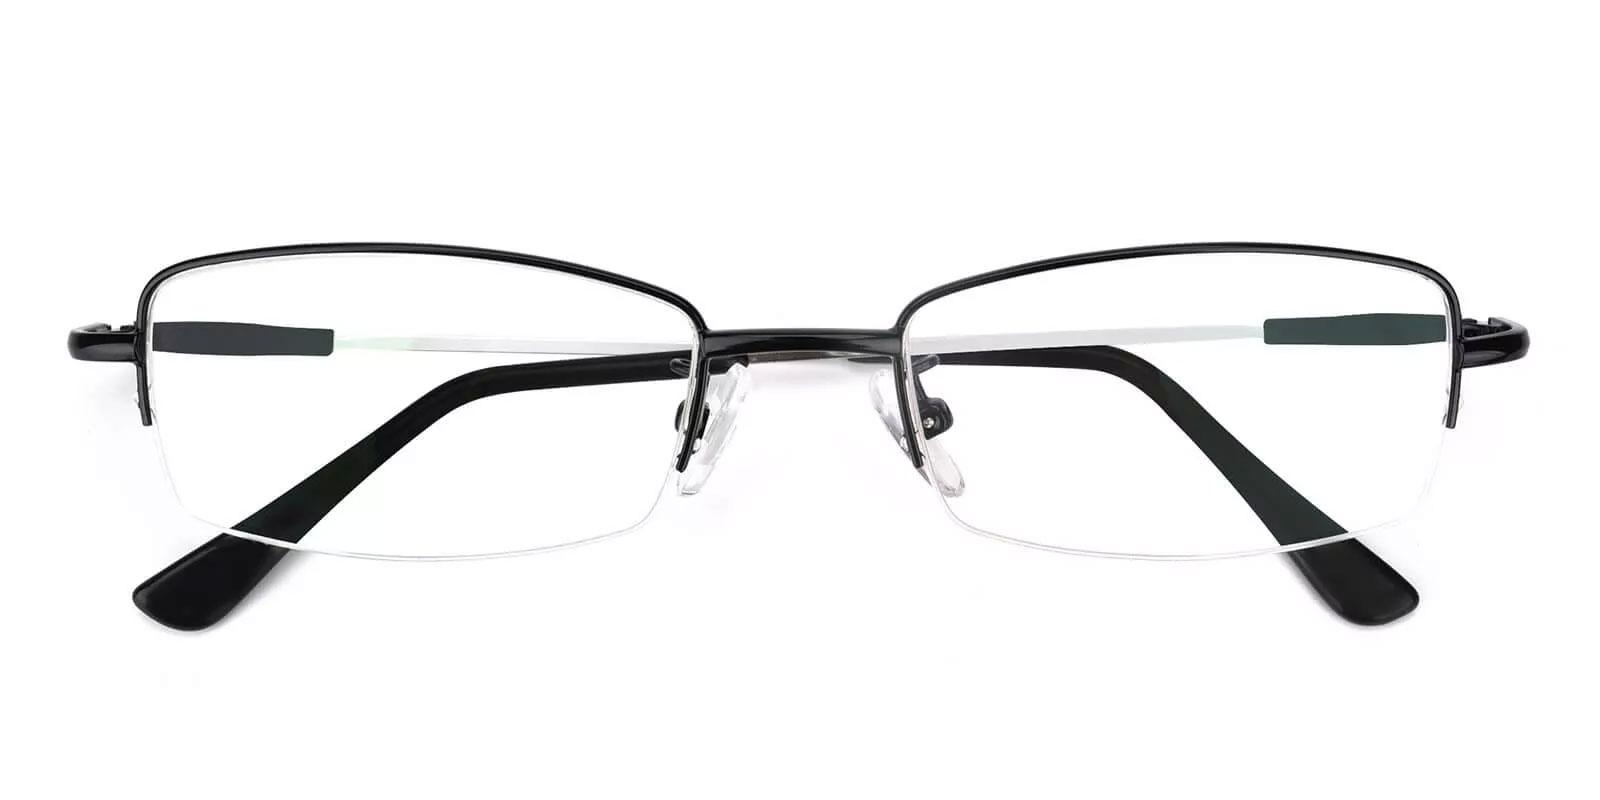 Benjamin Black Metal NosePads , Eyeglasses Frames from ABBE Glasses